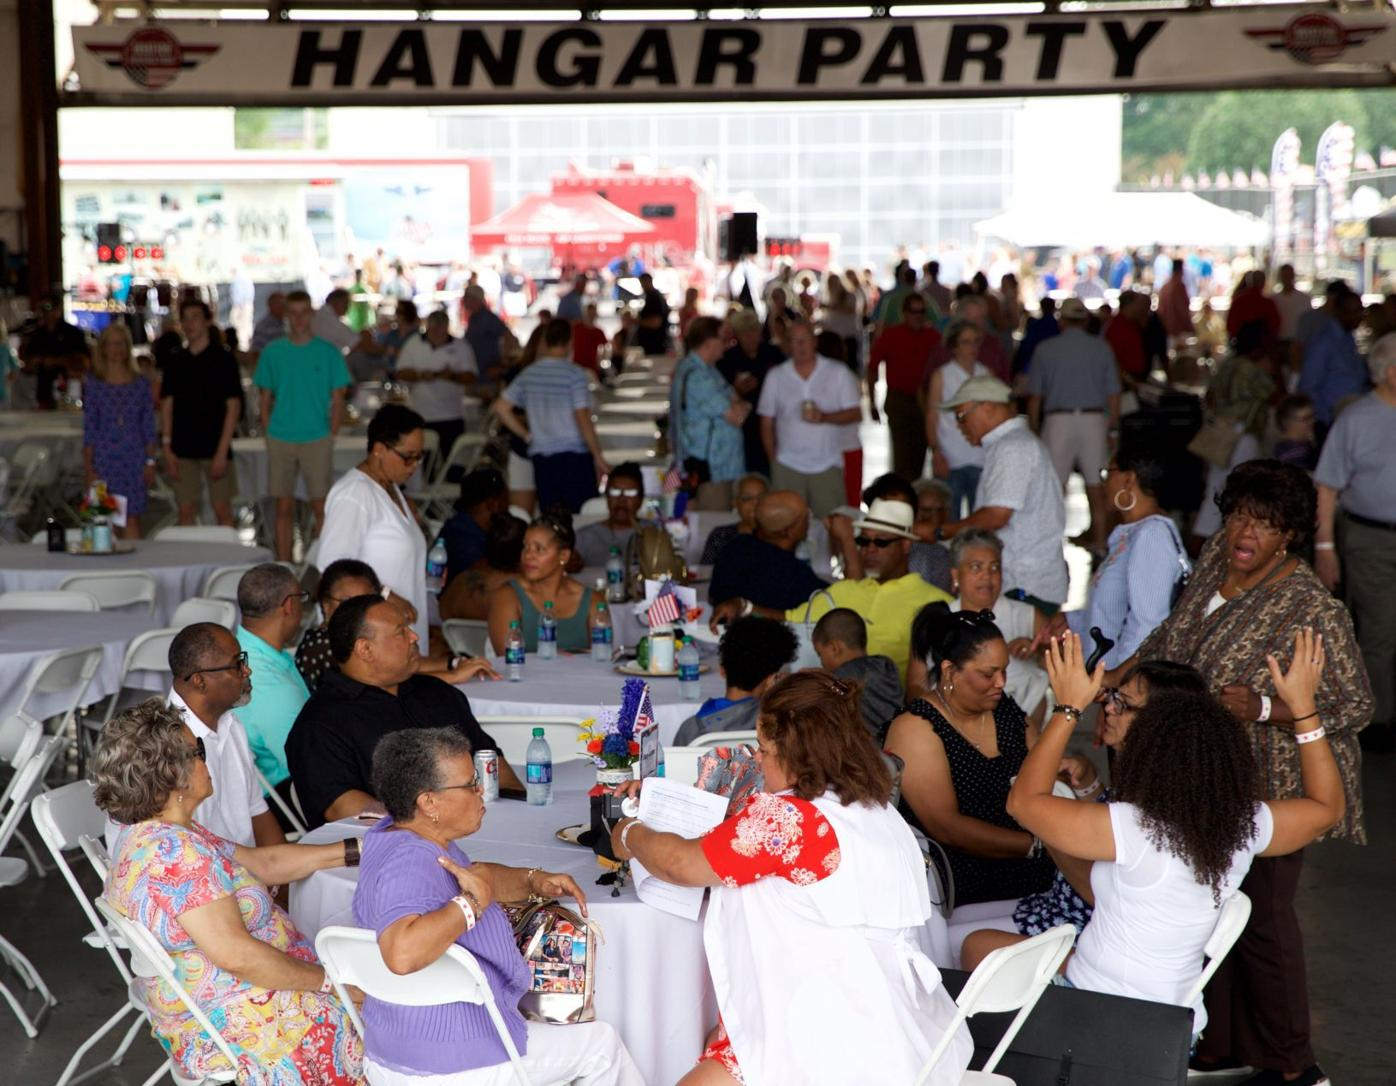 20190615_hangar party outbournd_barkoff 004.jpg